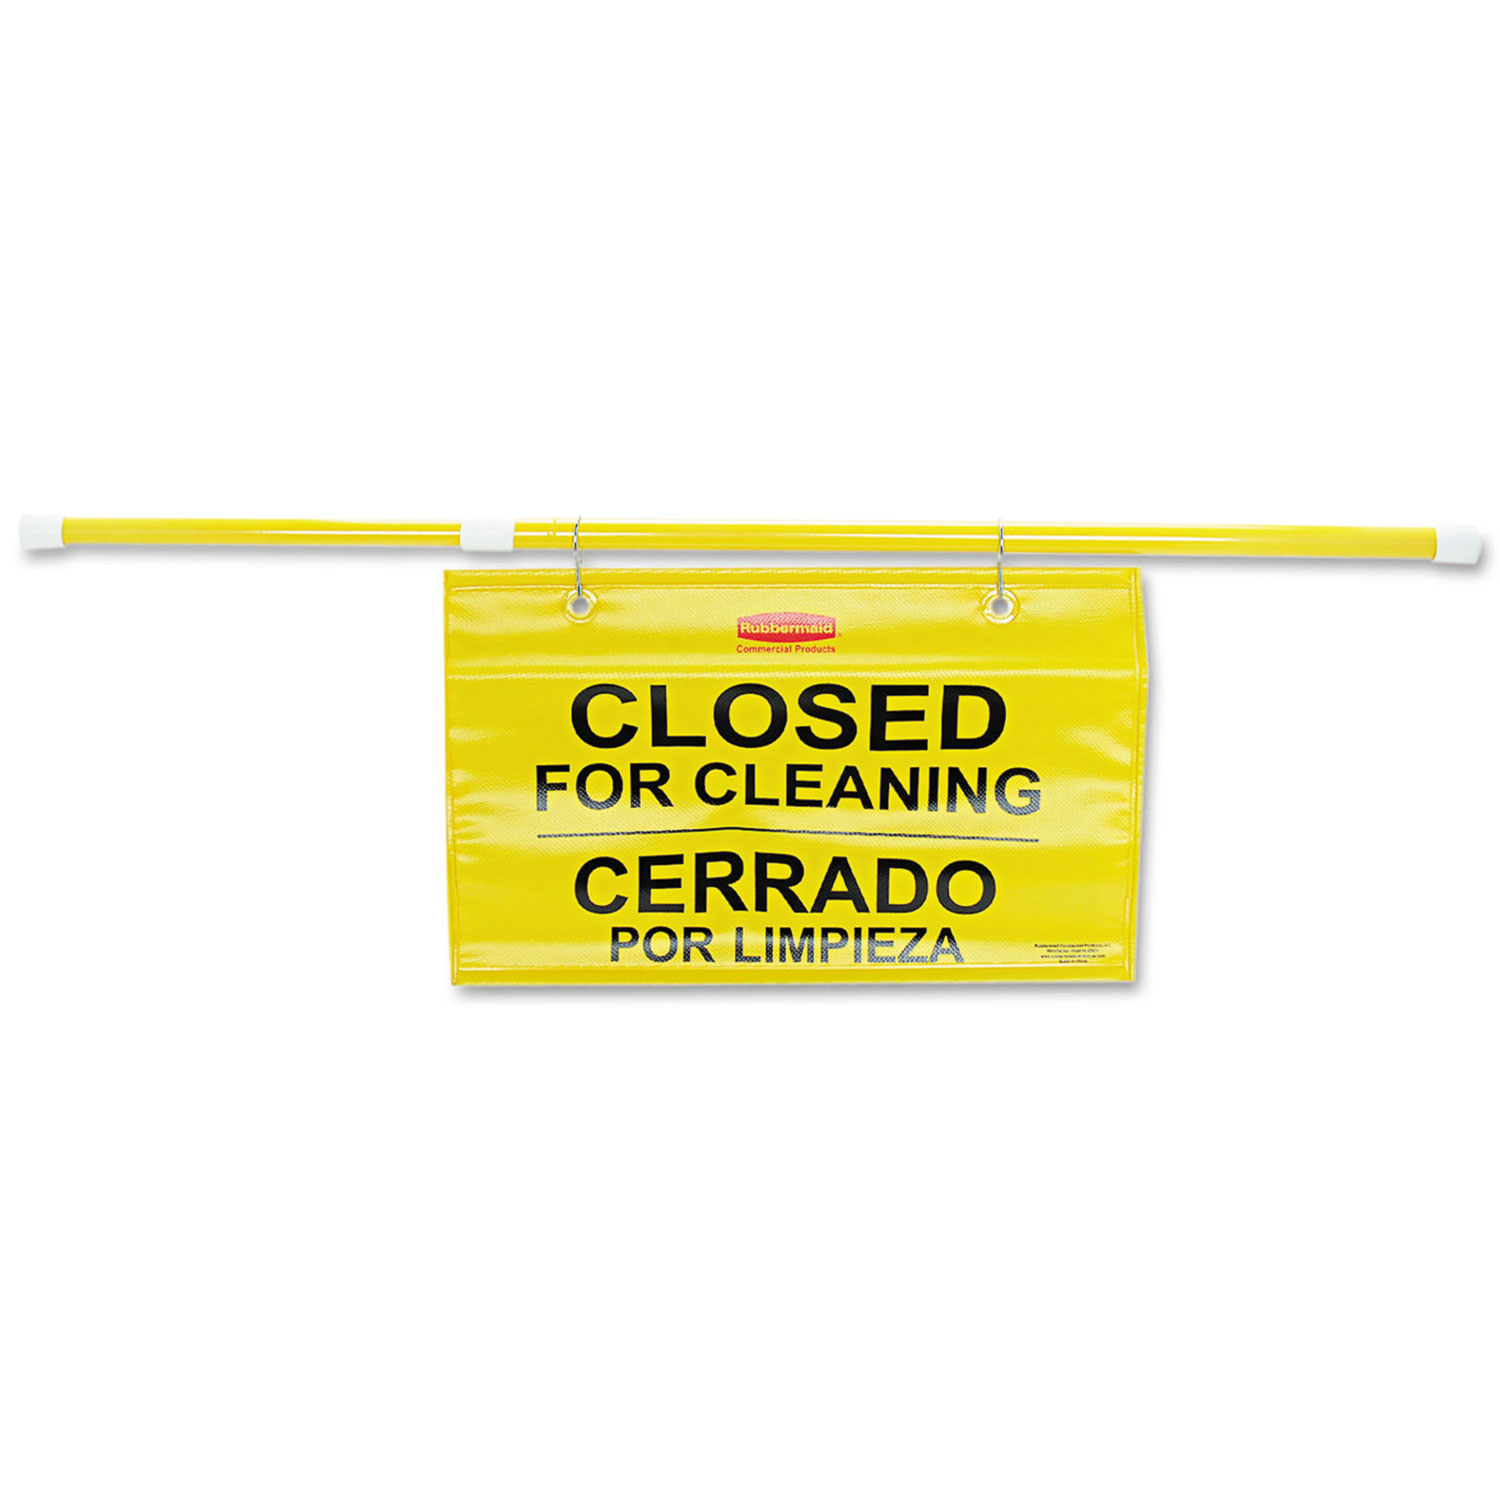 "Site Safety Hanging Sign, 50"" x 1"" x 13"", Multi-Lingual, Yellow"